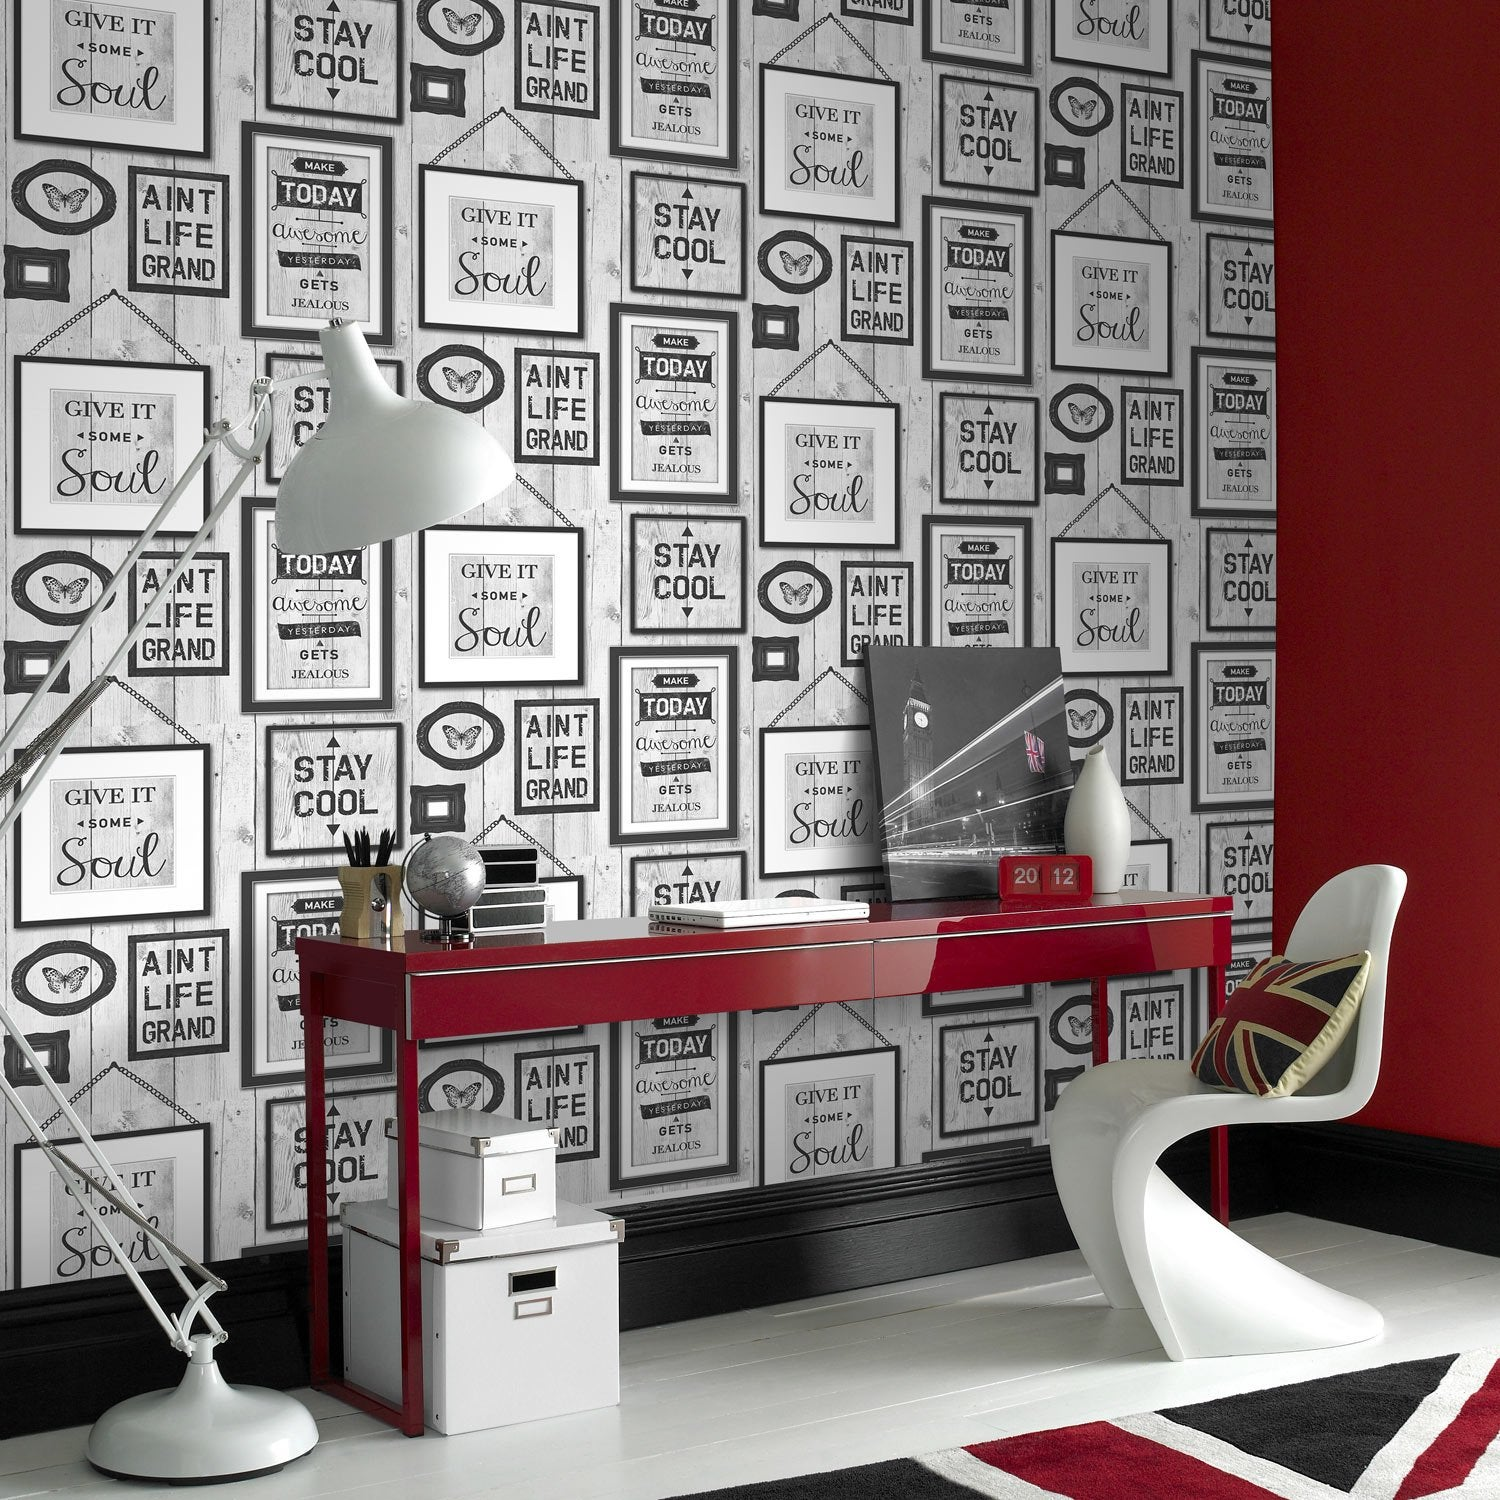 papier peint papier typo loft gris leroy merlin. Black Bedroom Furniture Sets. Home Design Ideas